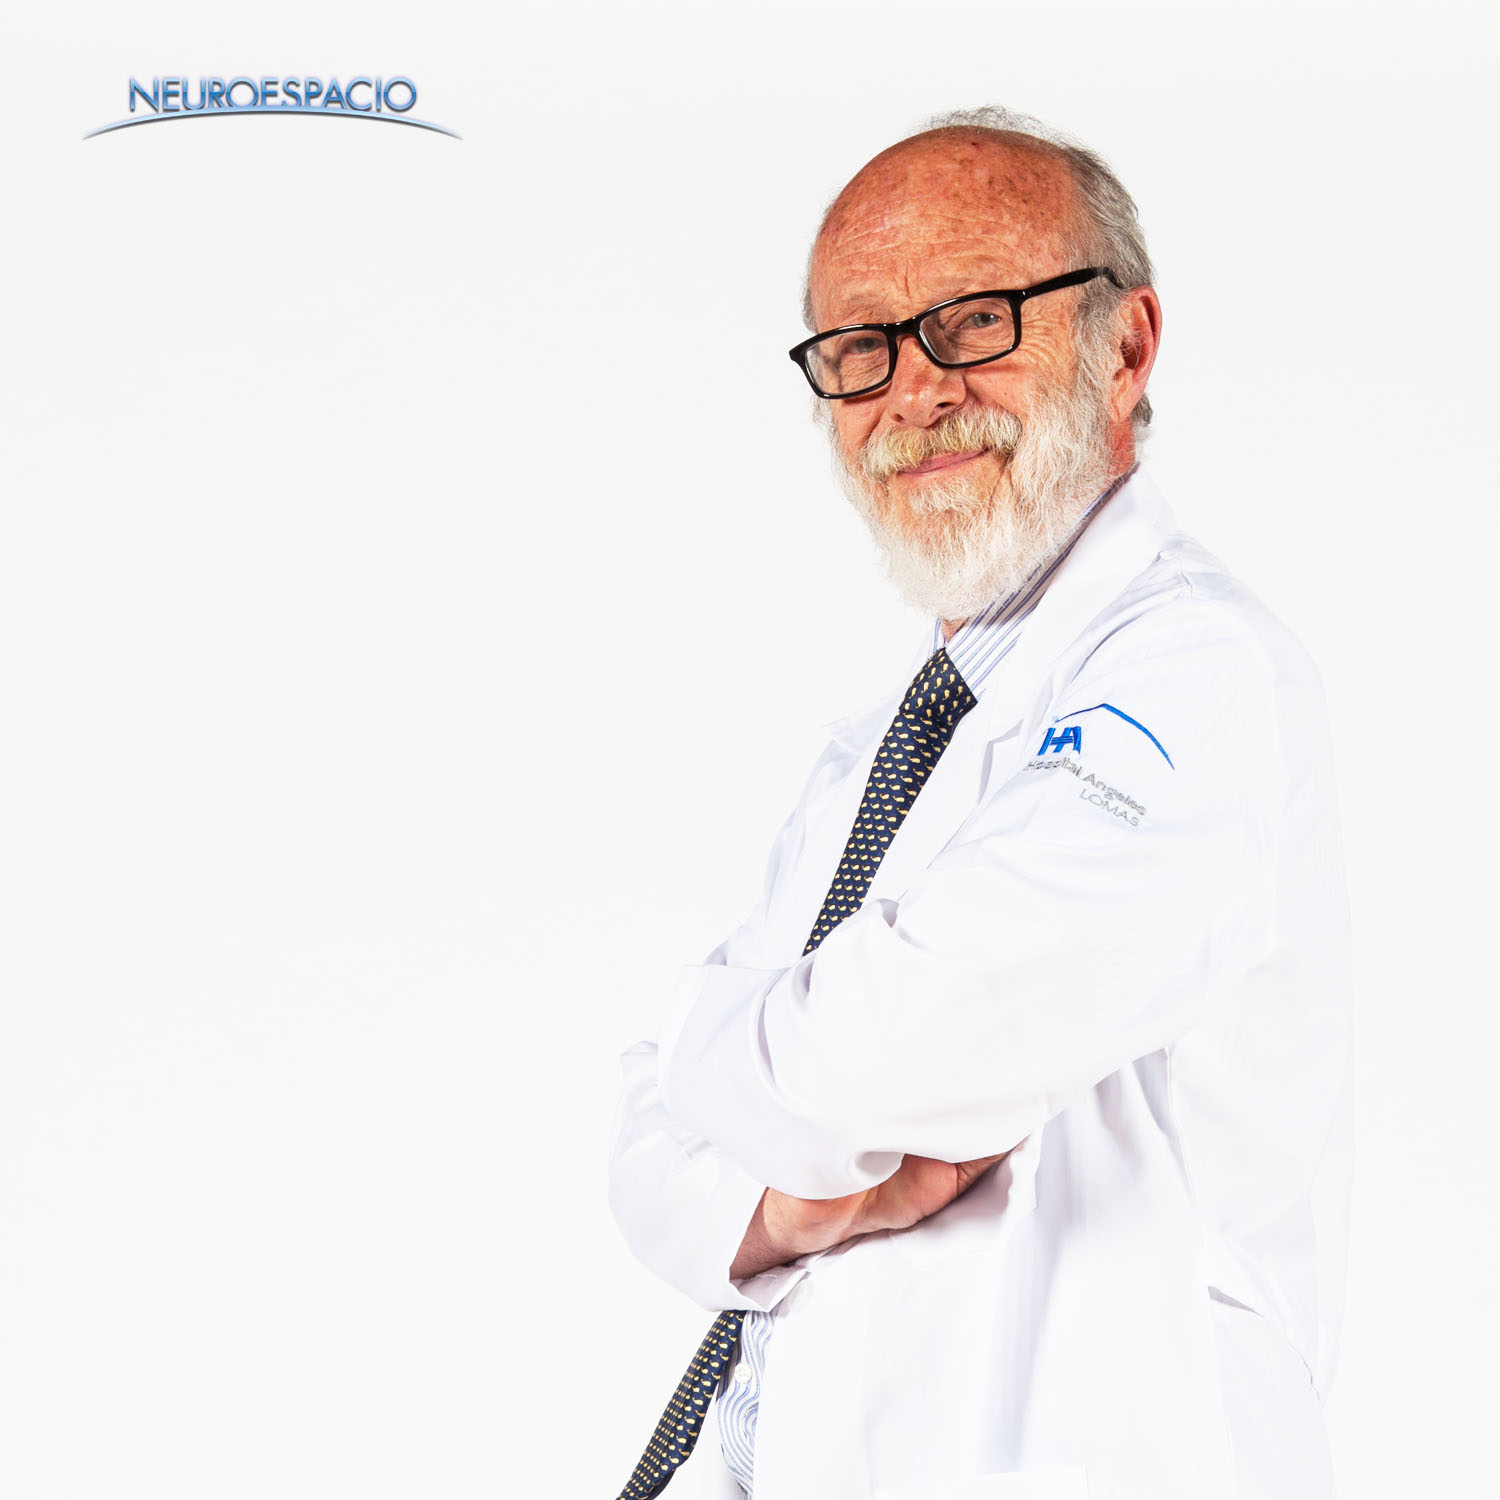 Neuroespacio resnikoff Dr. David Resnikoff Fisher